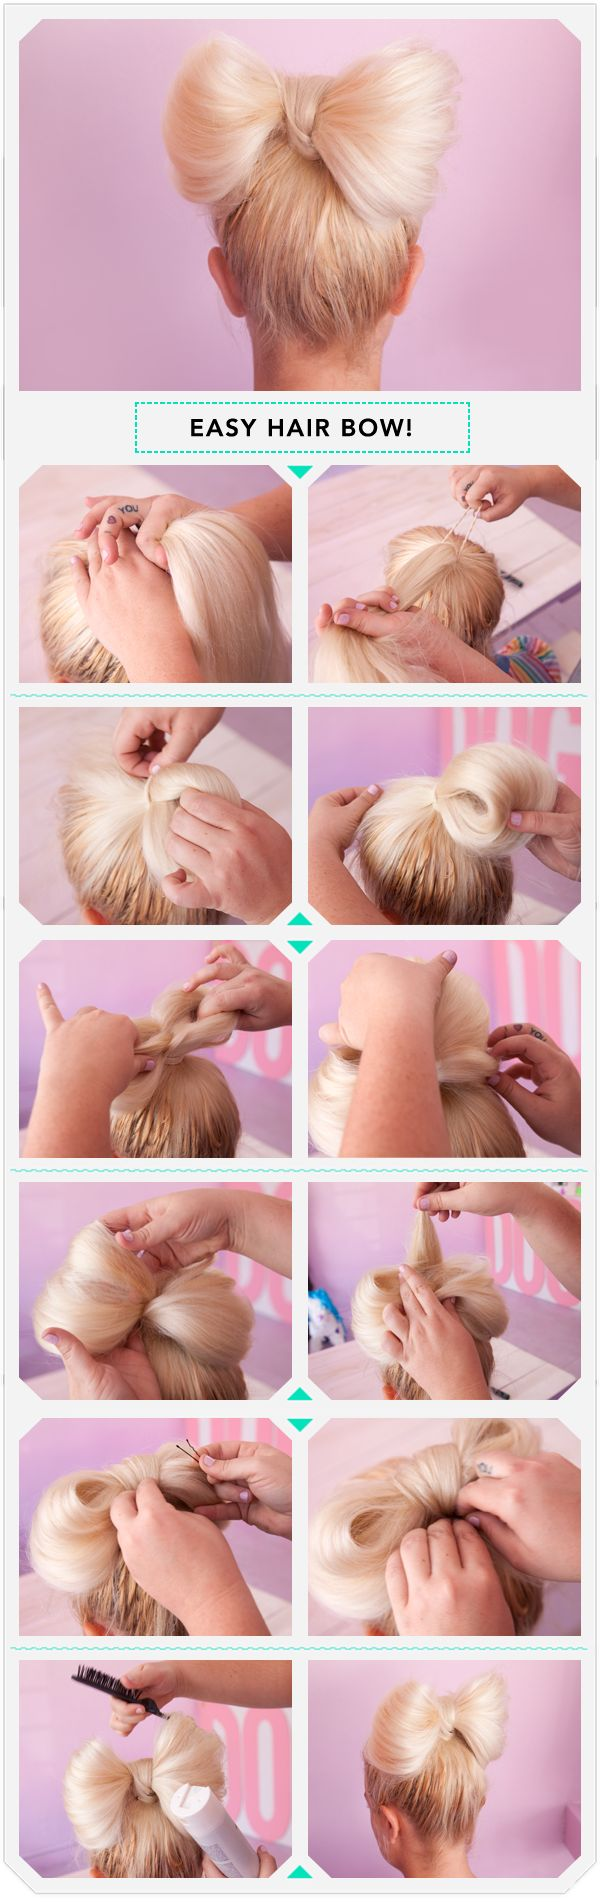 Hair Bow Inspiration | Beautylish